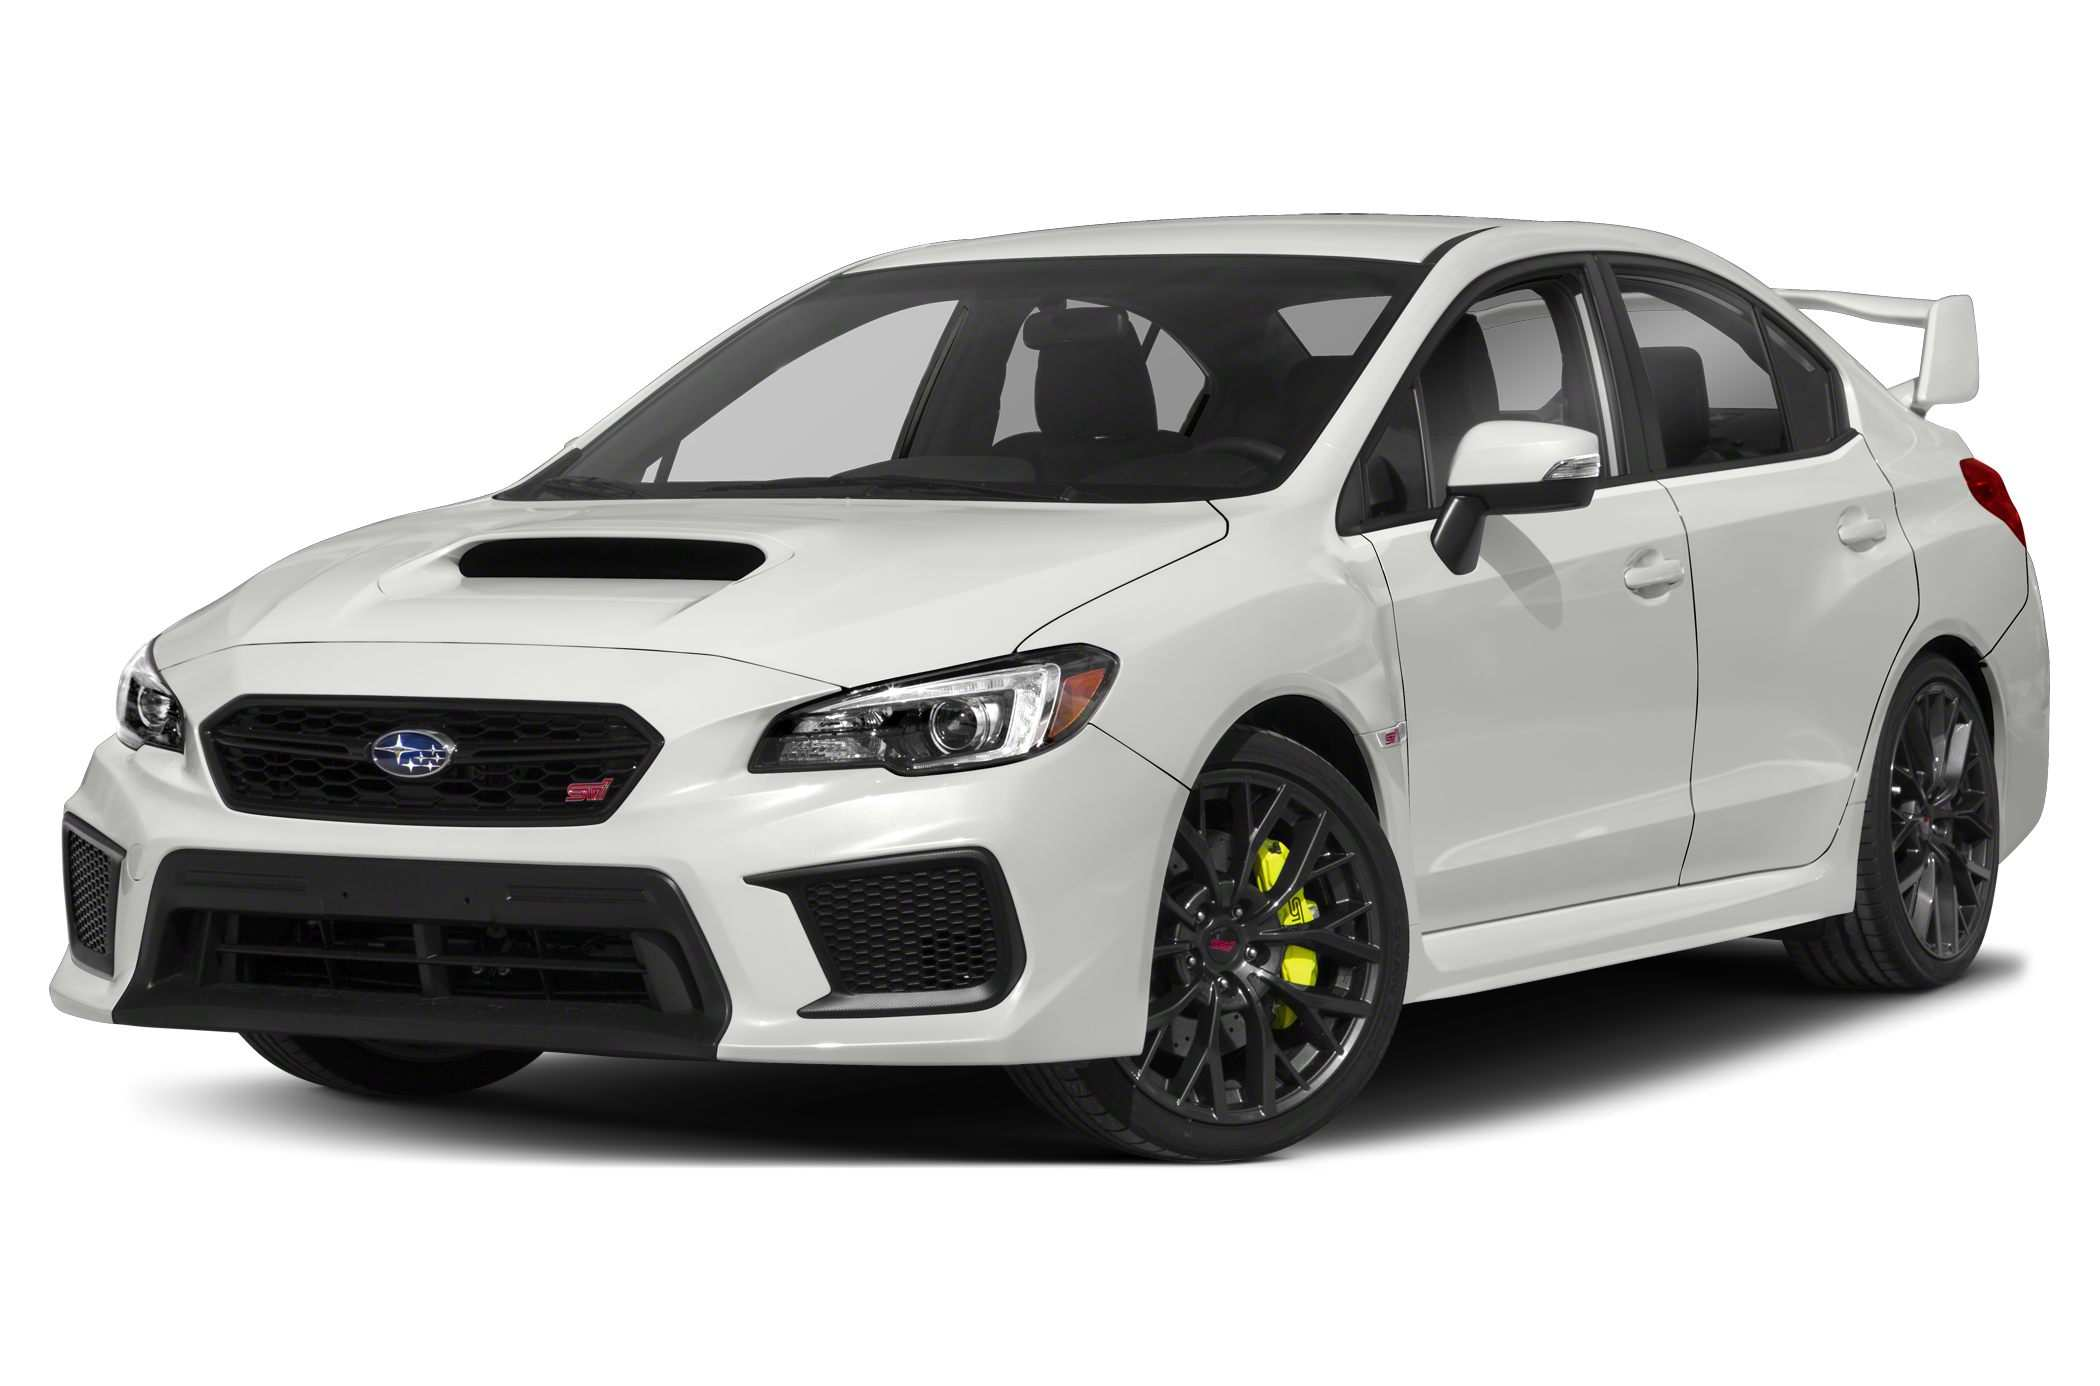 36 Best Review Wrx Subaru 2019 History with Wrx Subaru 2019